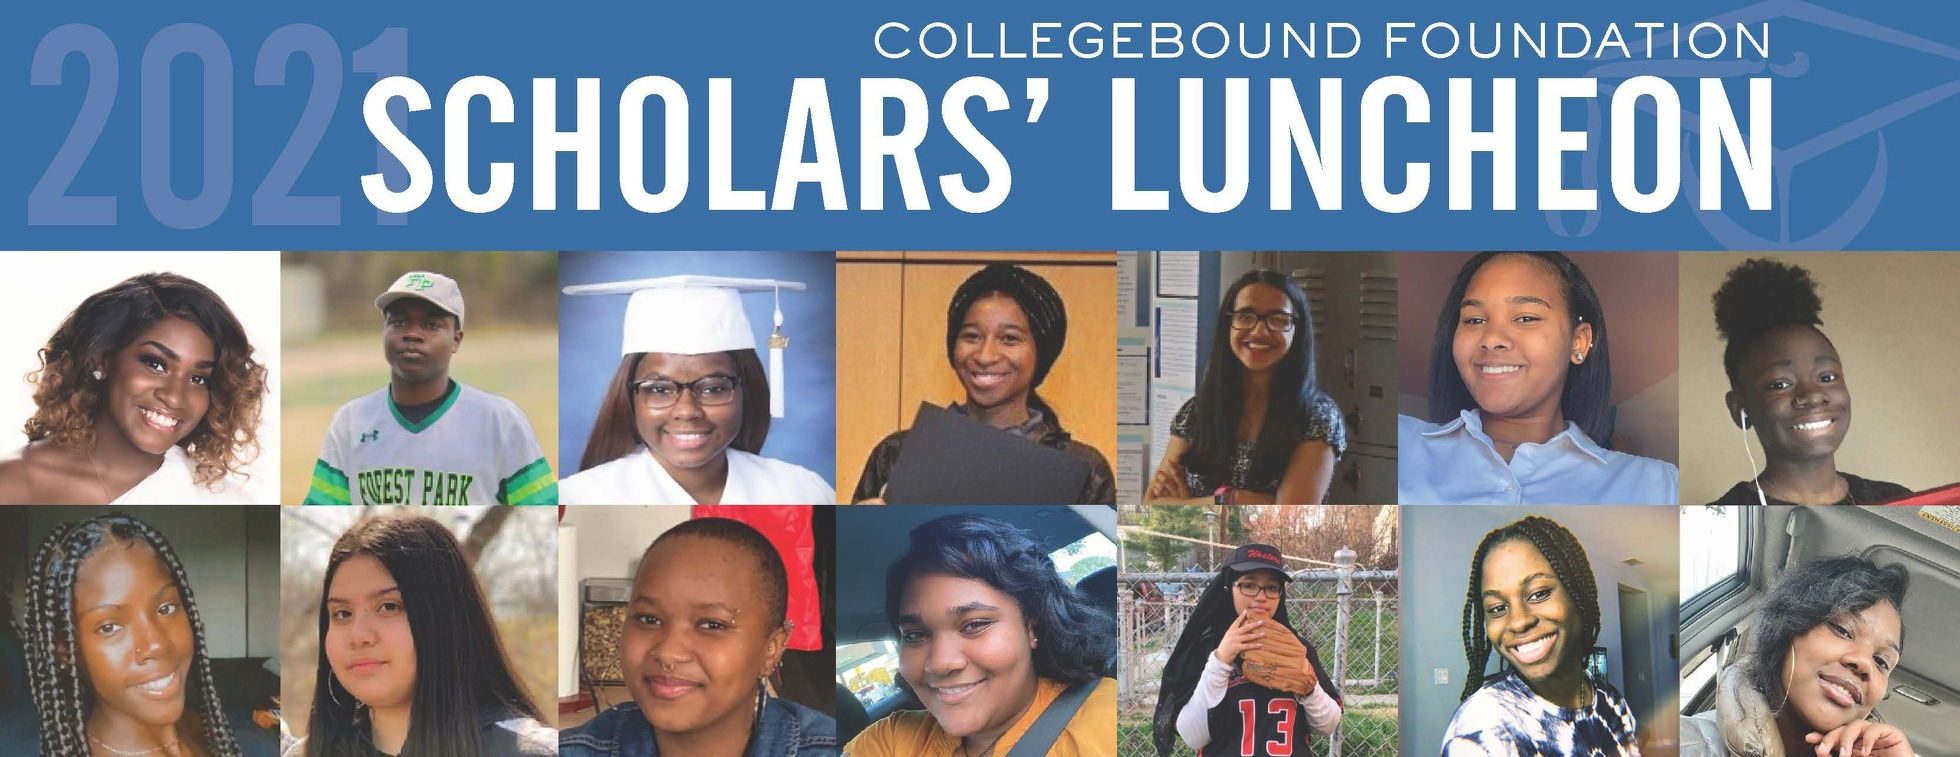 33rd annual Scholars' Luncheon